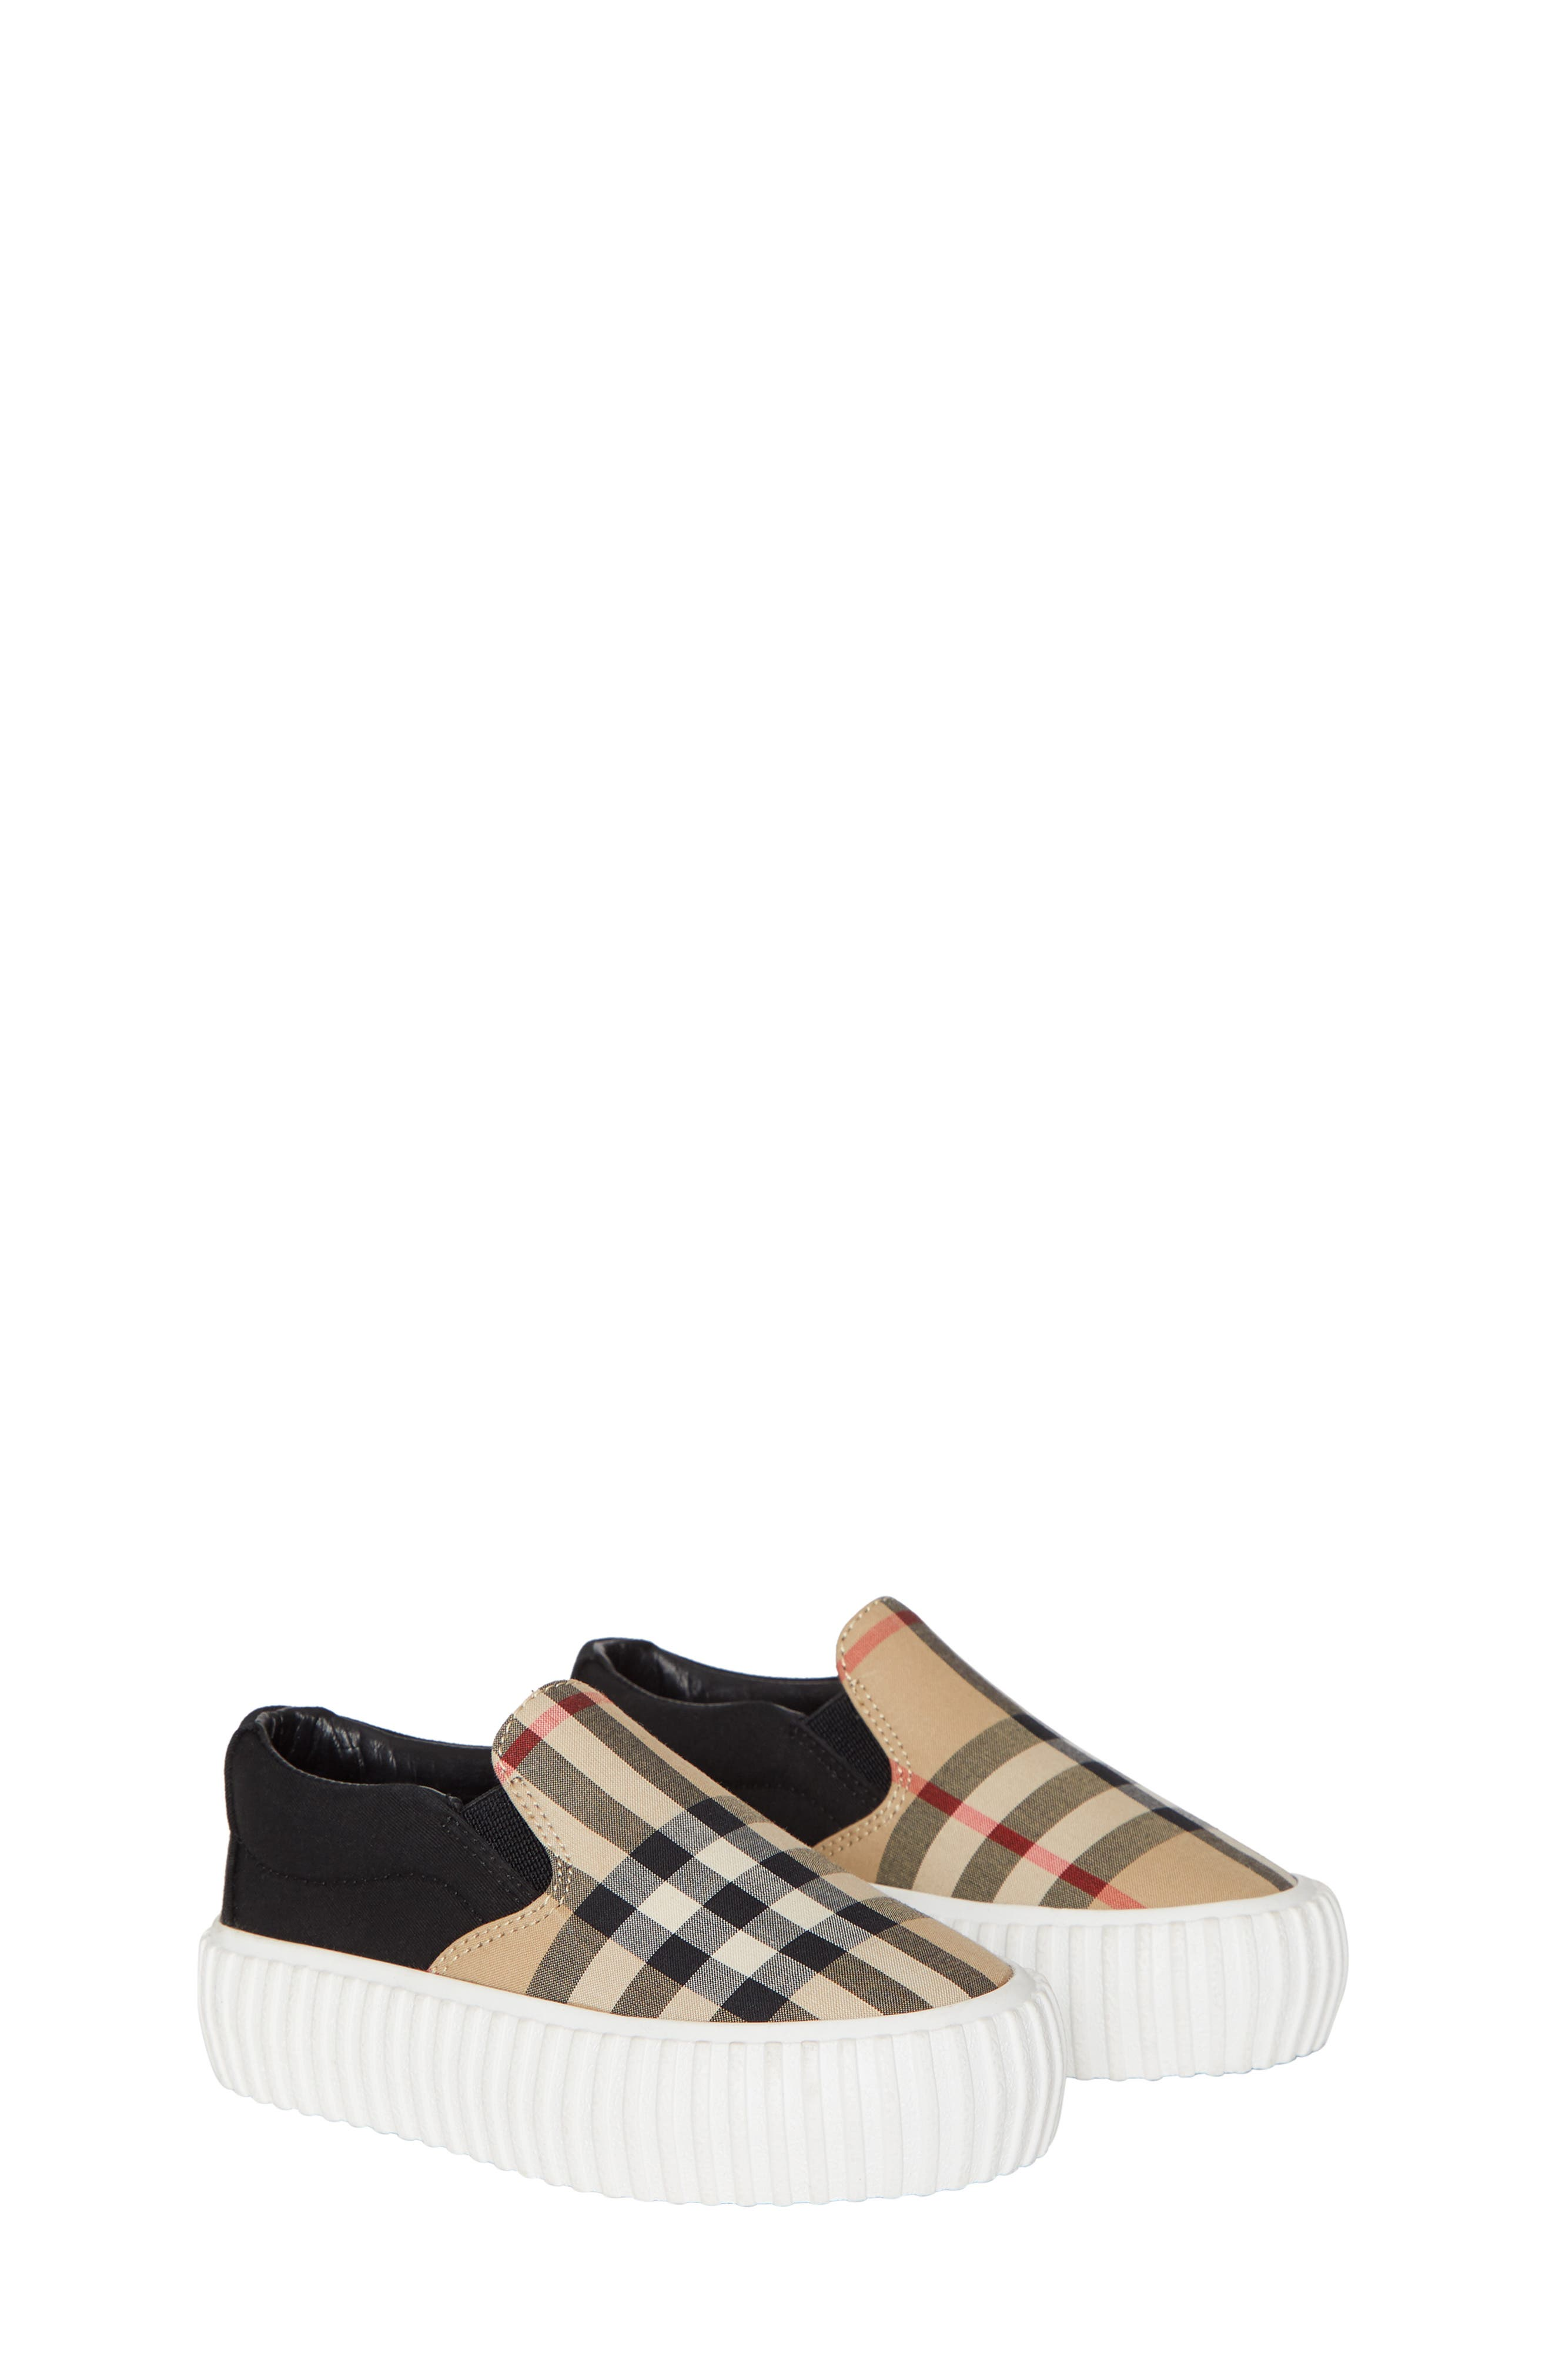 Burberry checks make this slip-on sneaker a perfectly preppy addition to any look. Style Name: Burberry Erwin Slip-On Sneakers (Walker & Toddler). Style Number: 5867364. Available in stores.